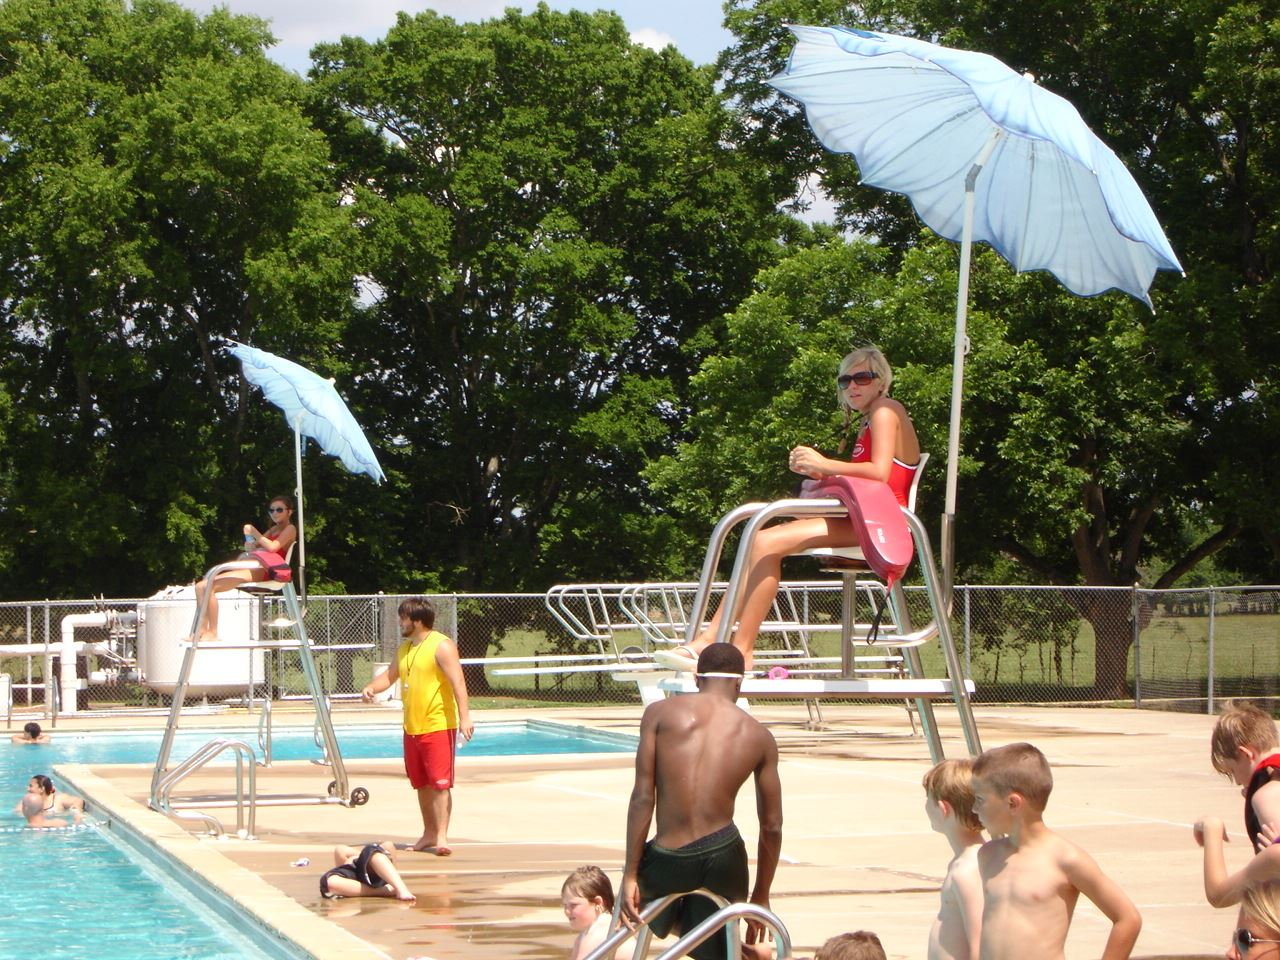 Lifeguard Overlooking the Swimming Facility